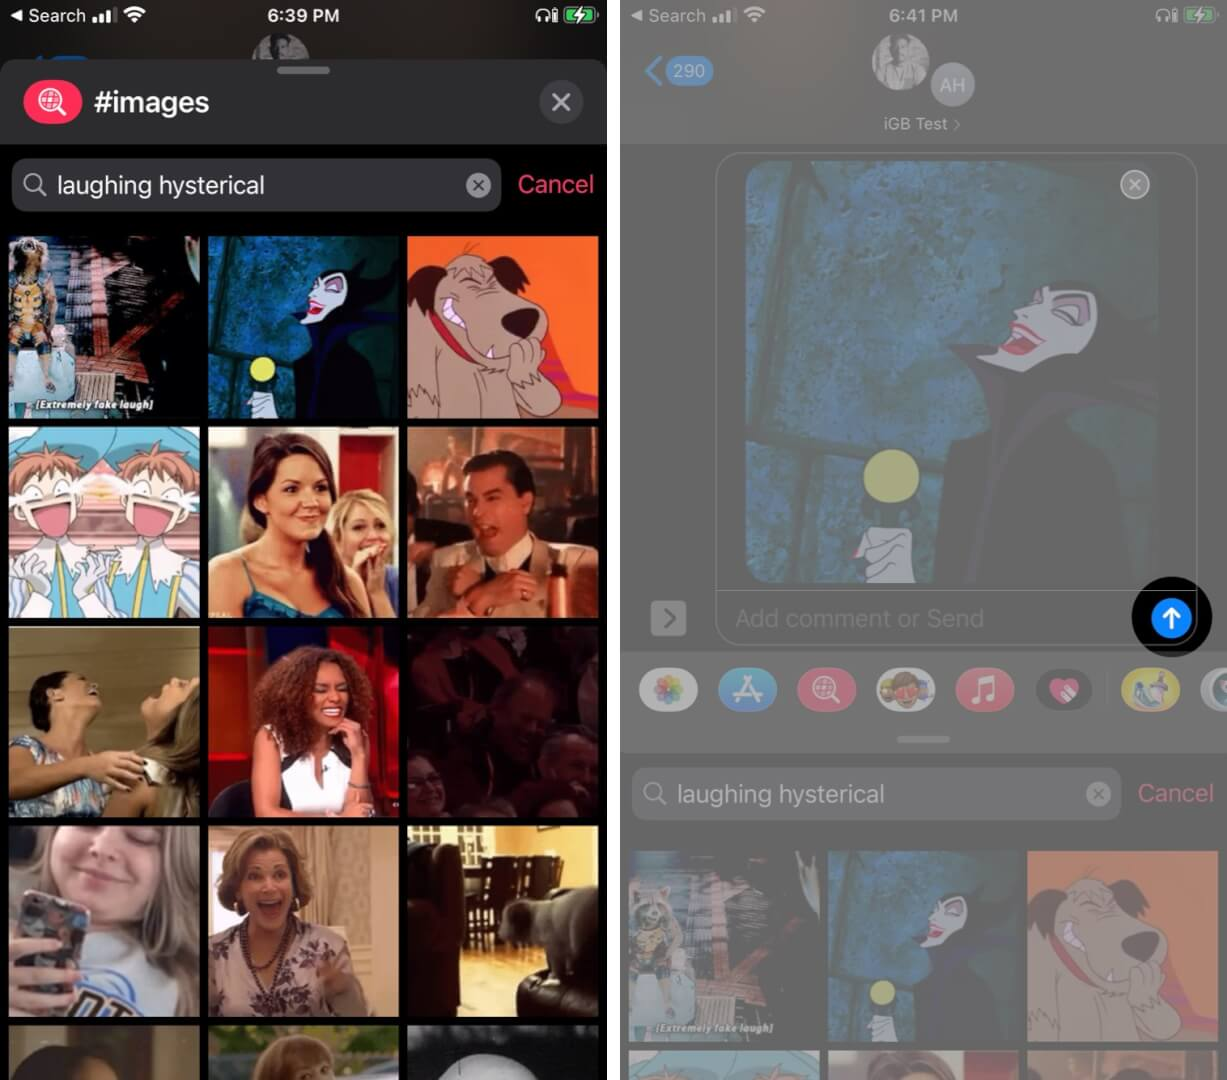 Select GIF you would like to send in iMessage, tap on forward